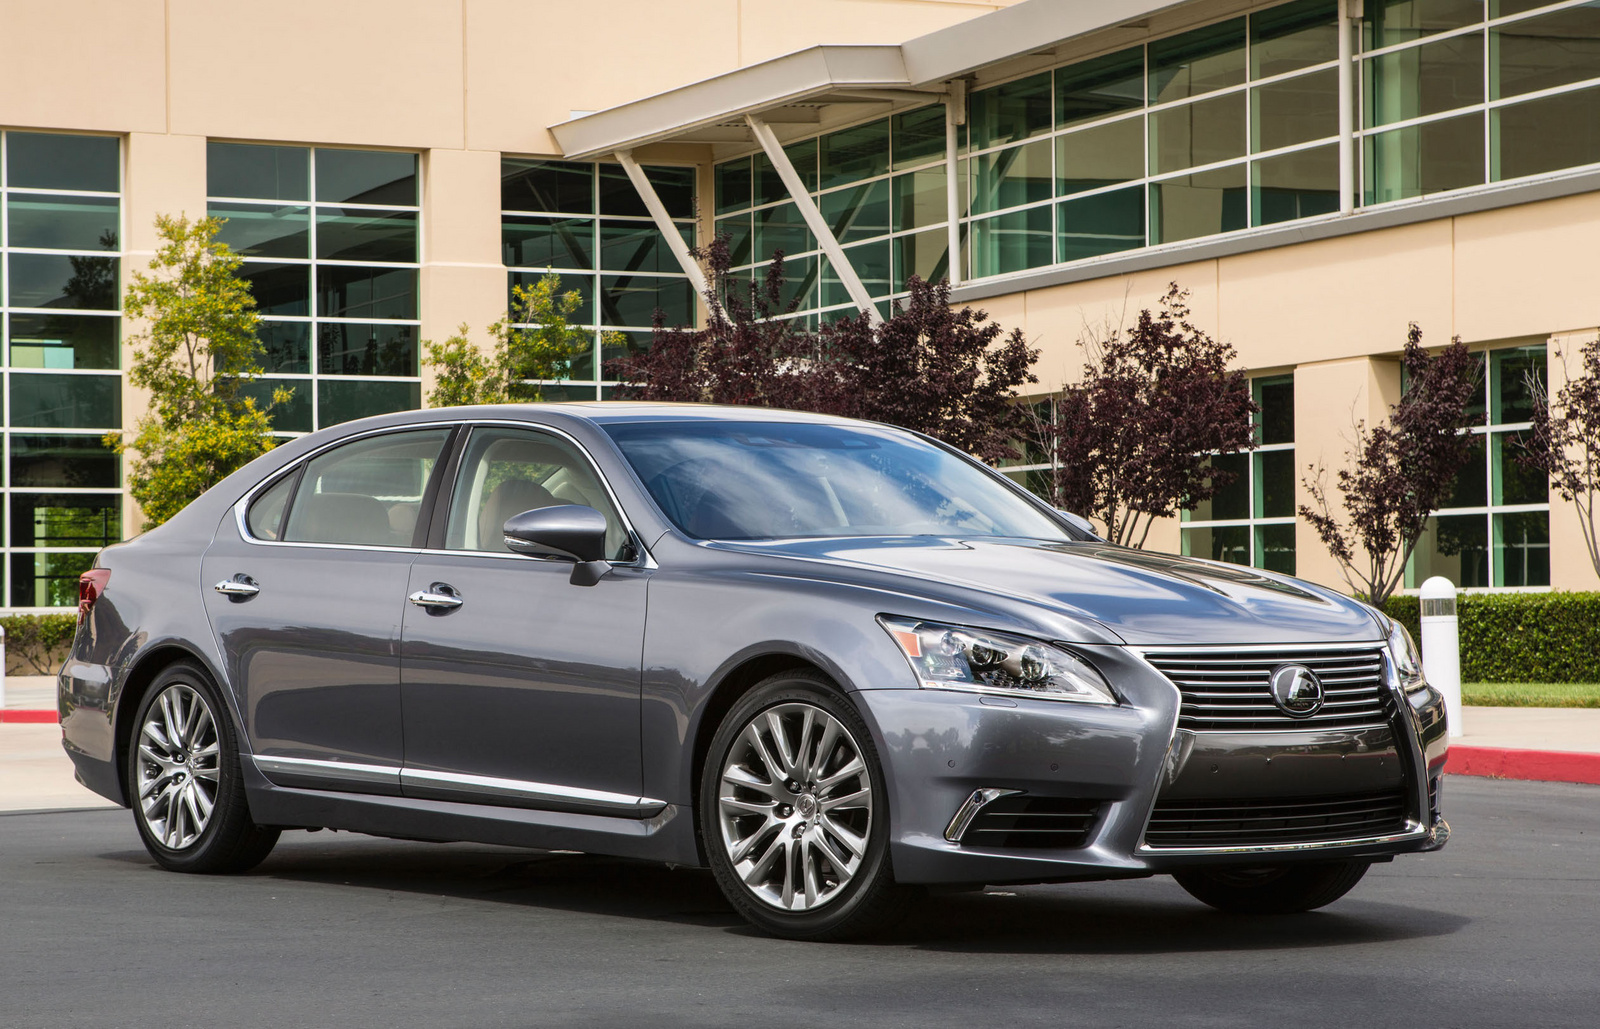 Home / Research / Lexus / LS 460 / 2015